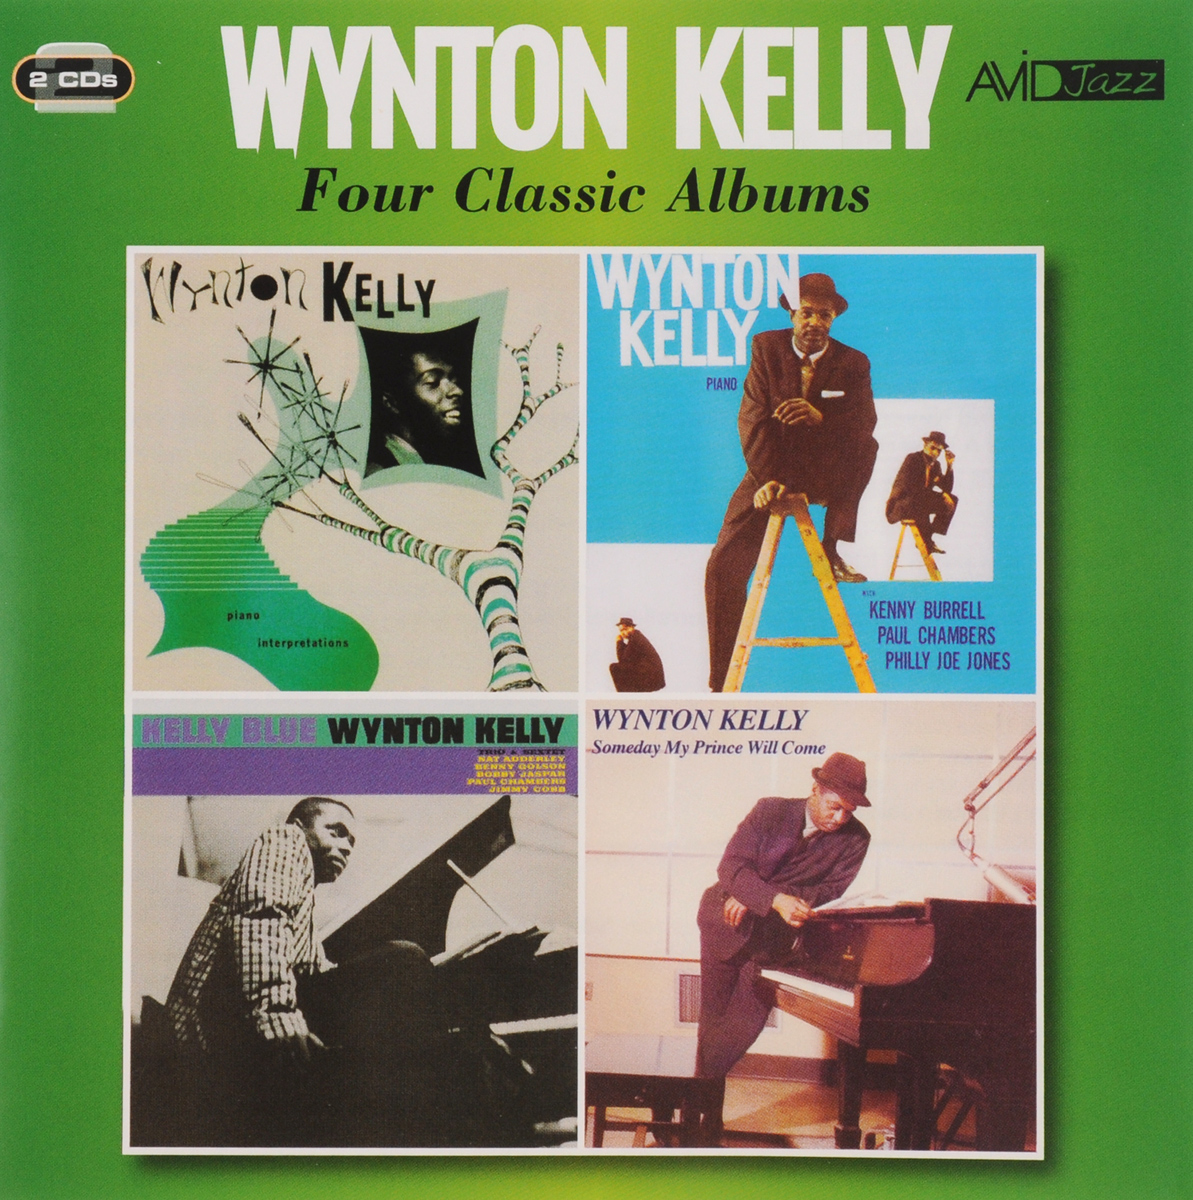 Уинтон Келли Avid Jazz. Wynton Kelly. Four Classic Albums (2 CD) avid dolby surround tools